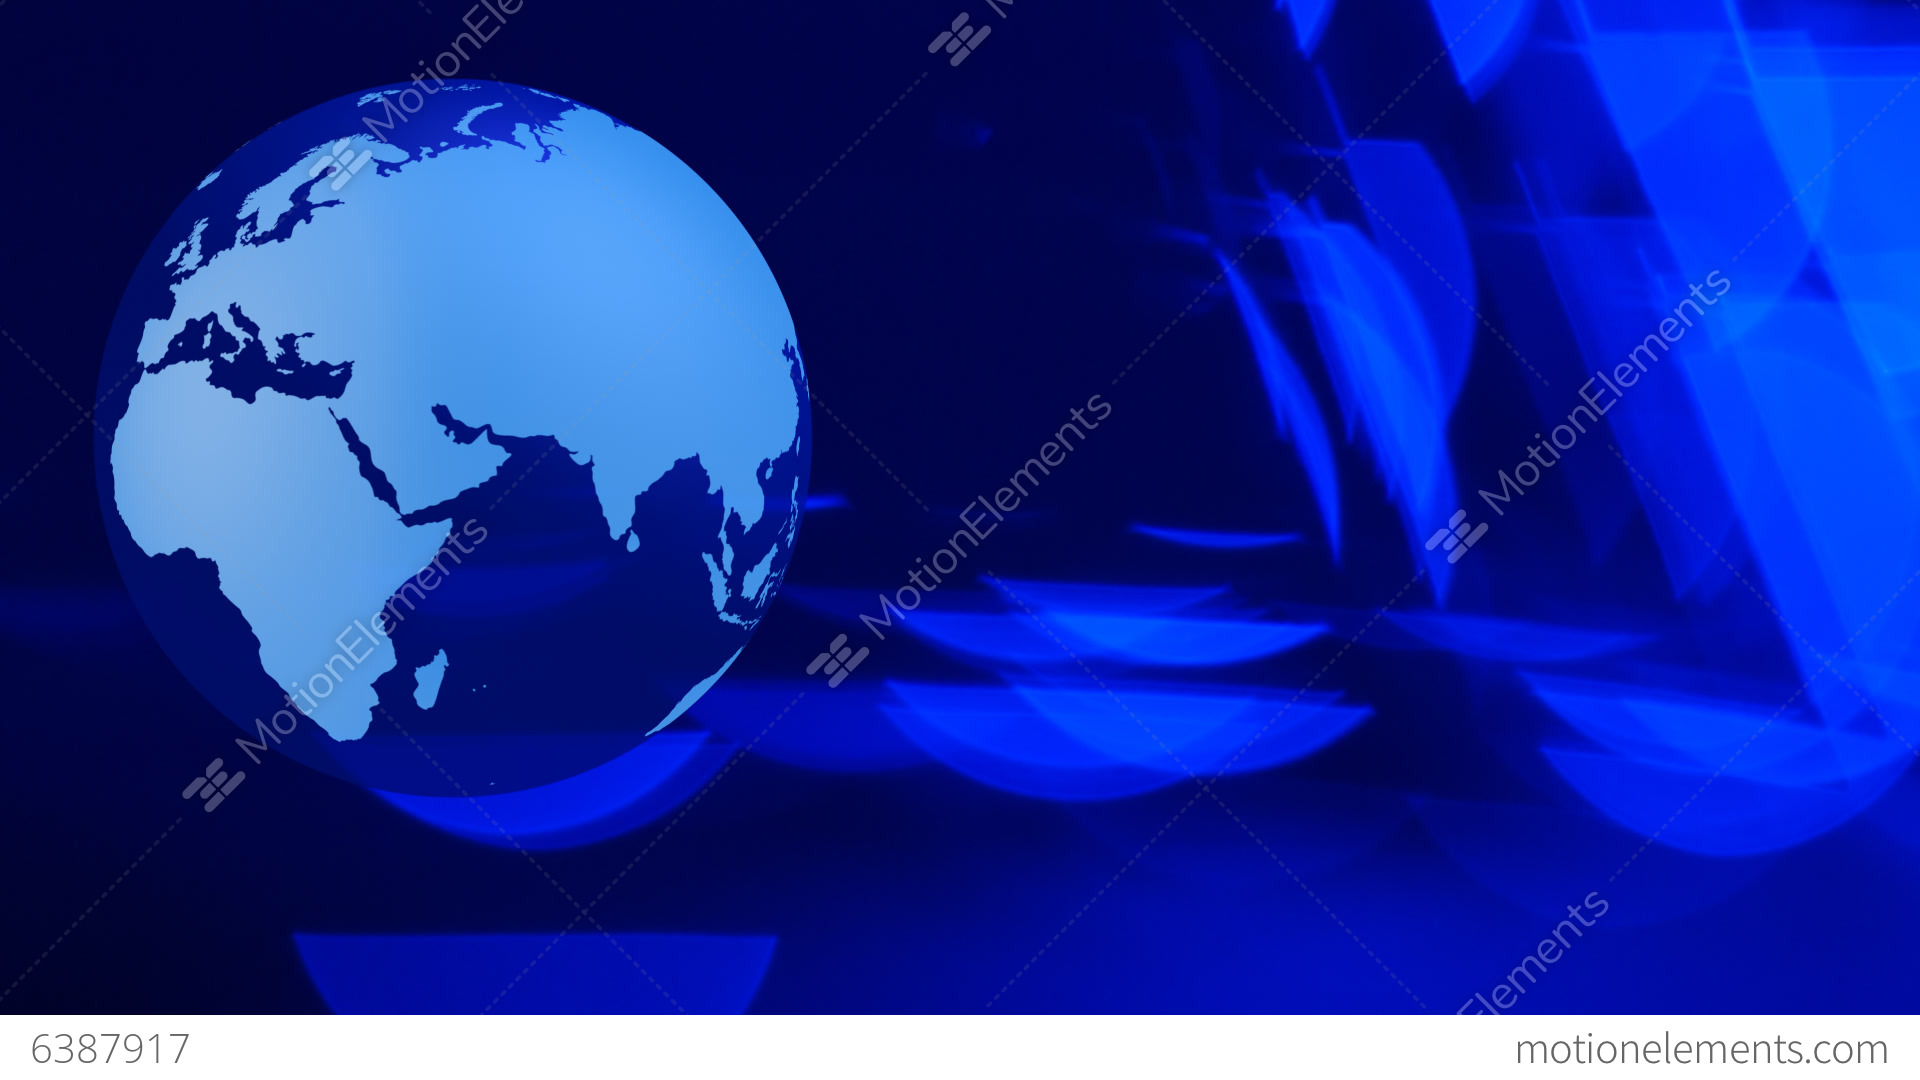 Background image rotate 90 - Rotating Earth Abstract Background Stock Video Footage